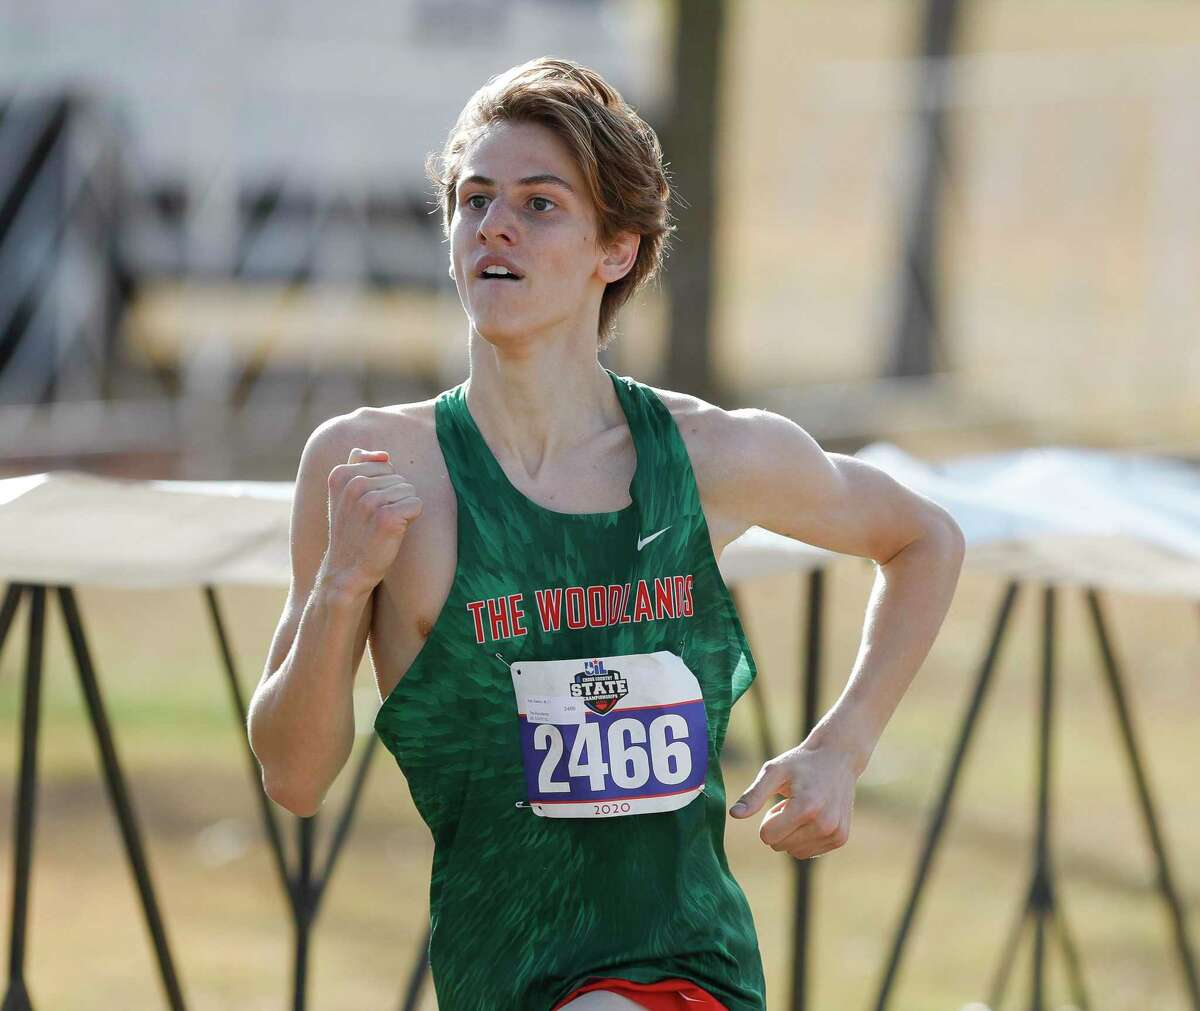 Kyle Easton of The Woodlands, shown here last fall at the state meet, finished fourth place in the boys Varsity A 4,000-meter race at Bear Branch Park on Friday, August 27, 2021.